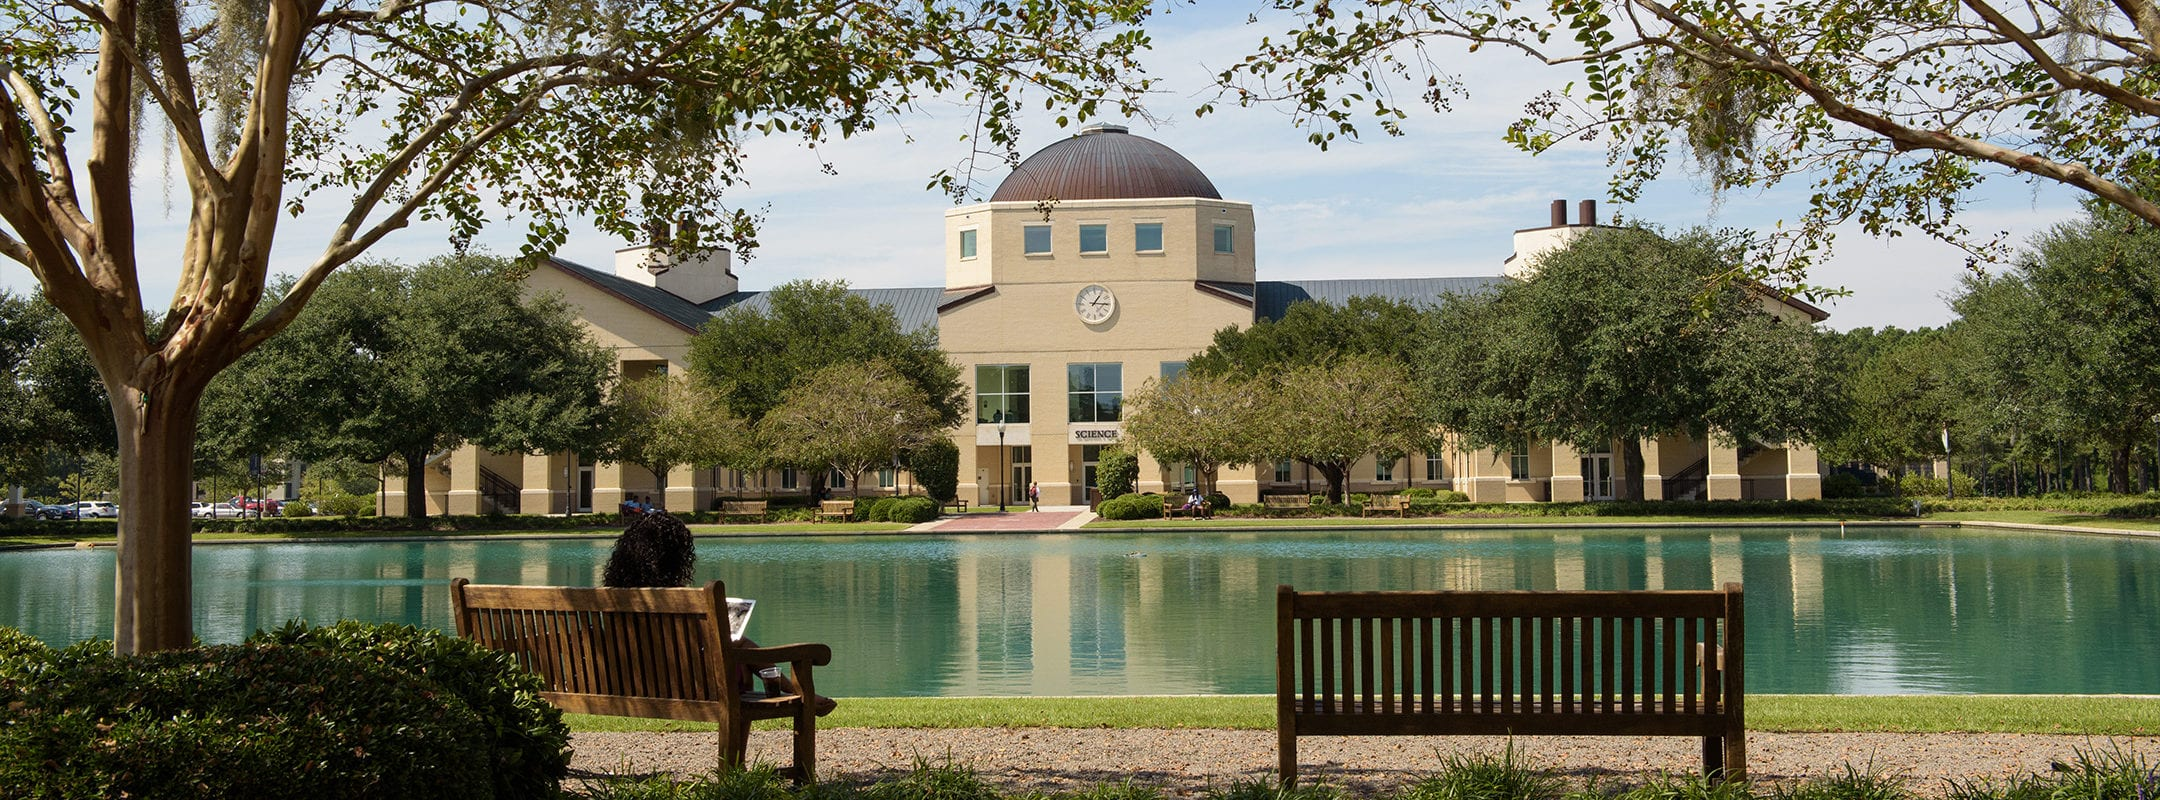 A view of the Science Building at CSU from across the reflection pond.